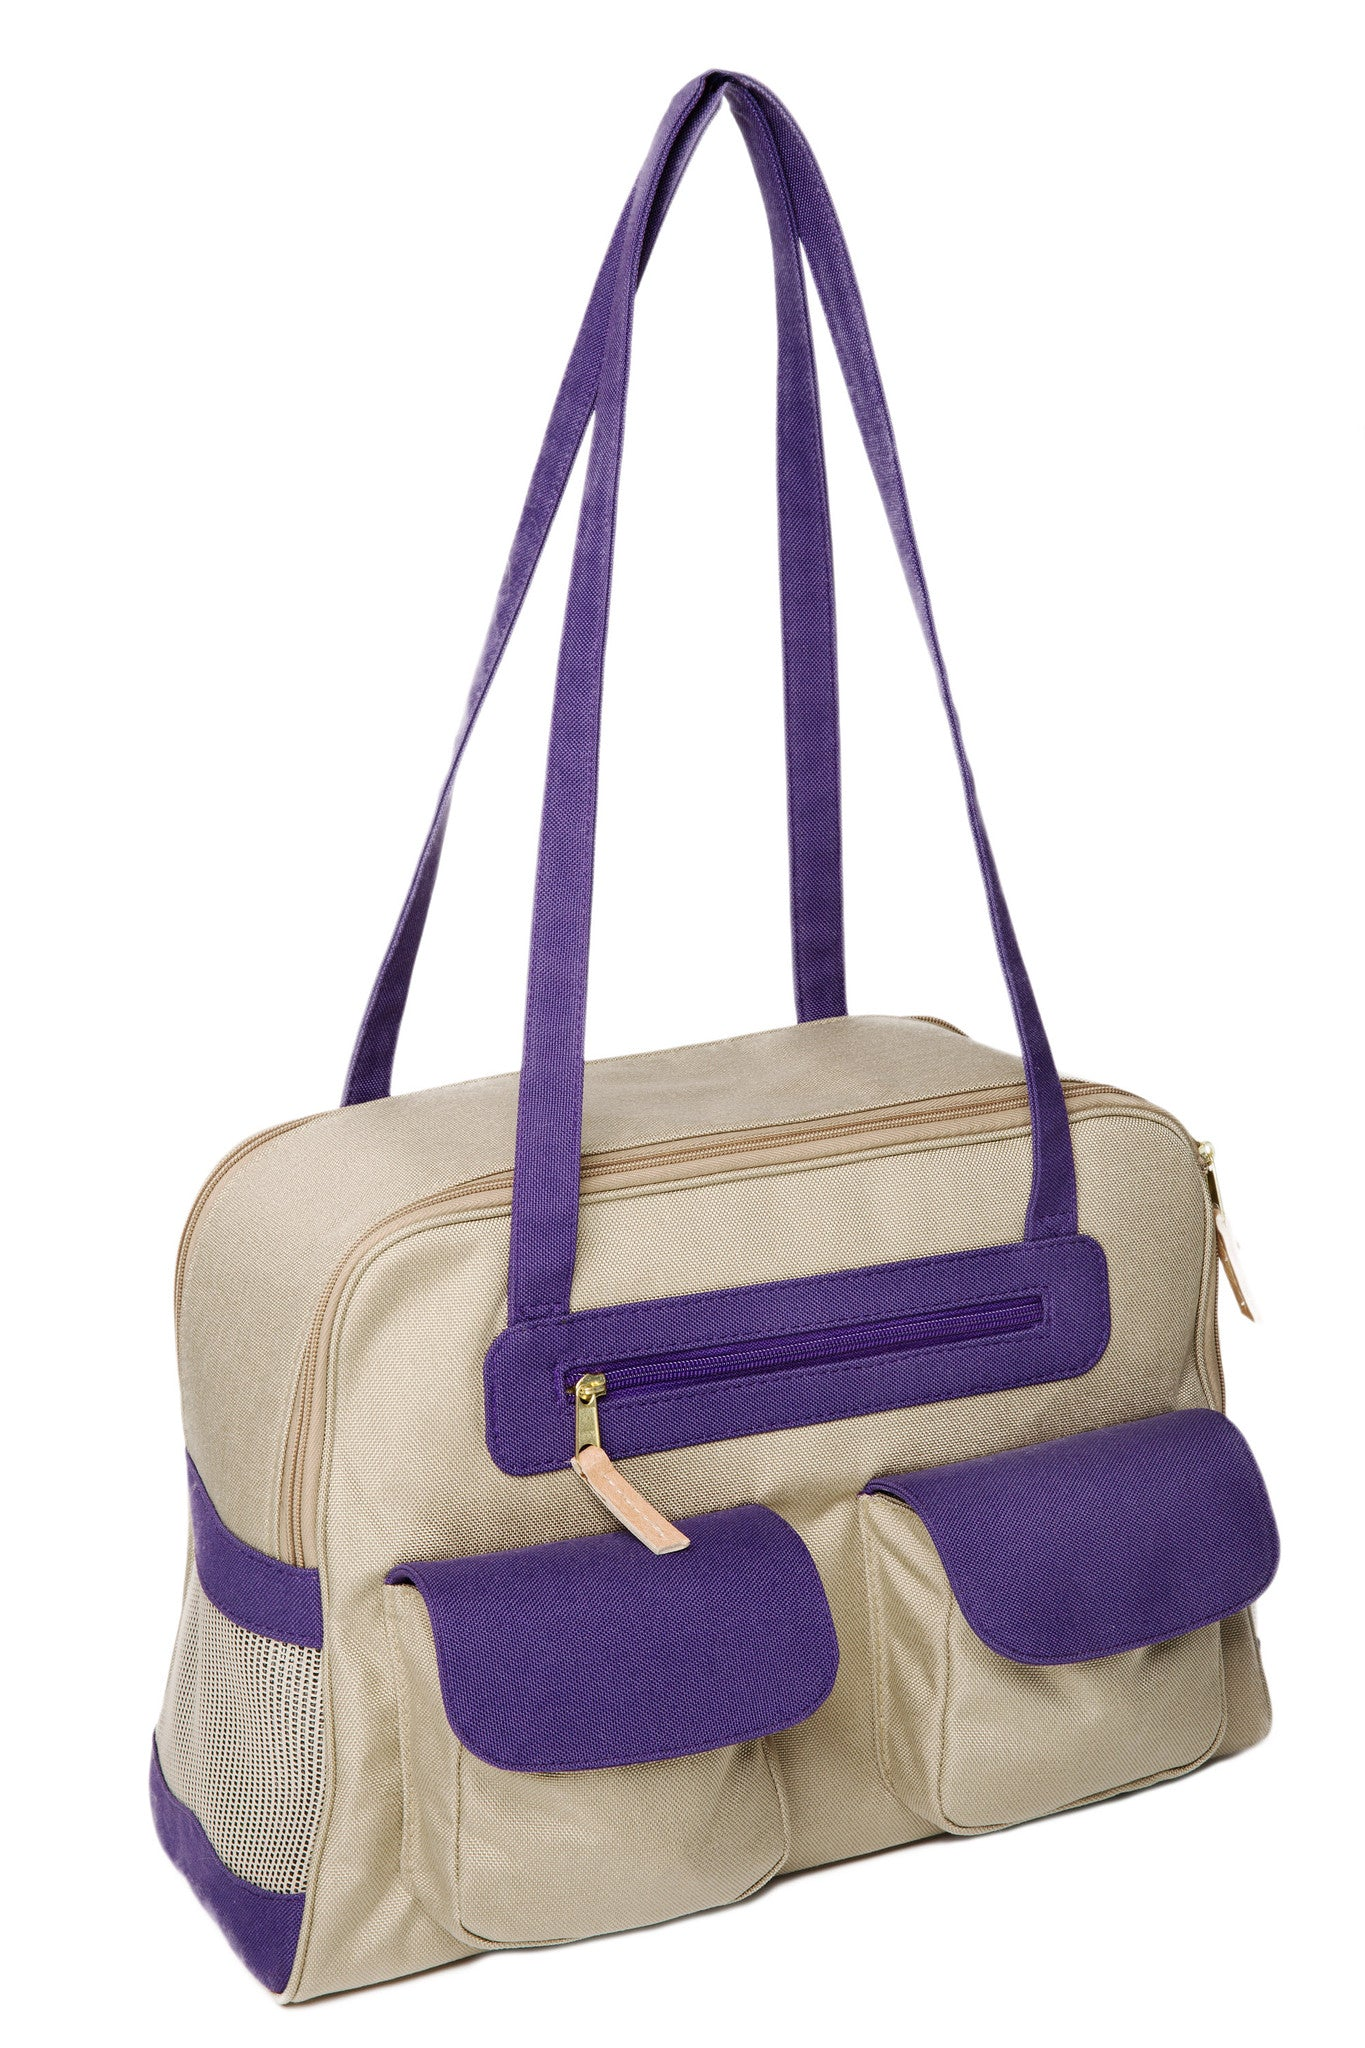 Spring/Summer - Beige Canvas Dog Carrier w/Colored Canvas Trim - 4 Color Options